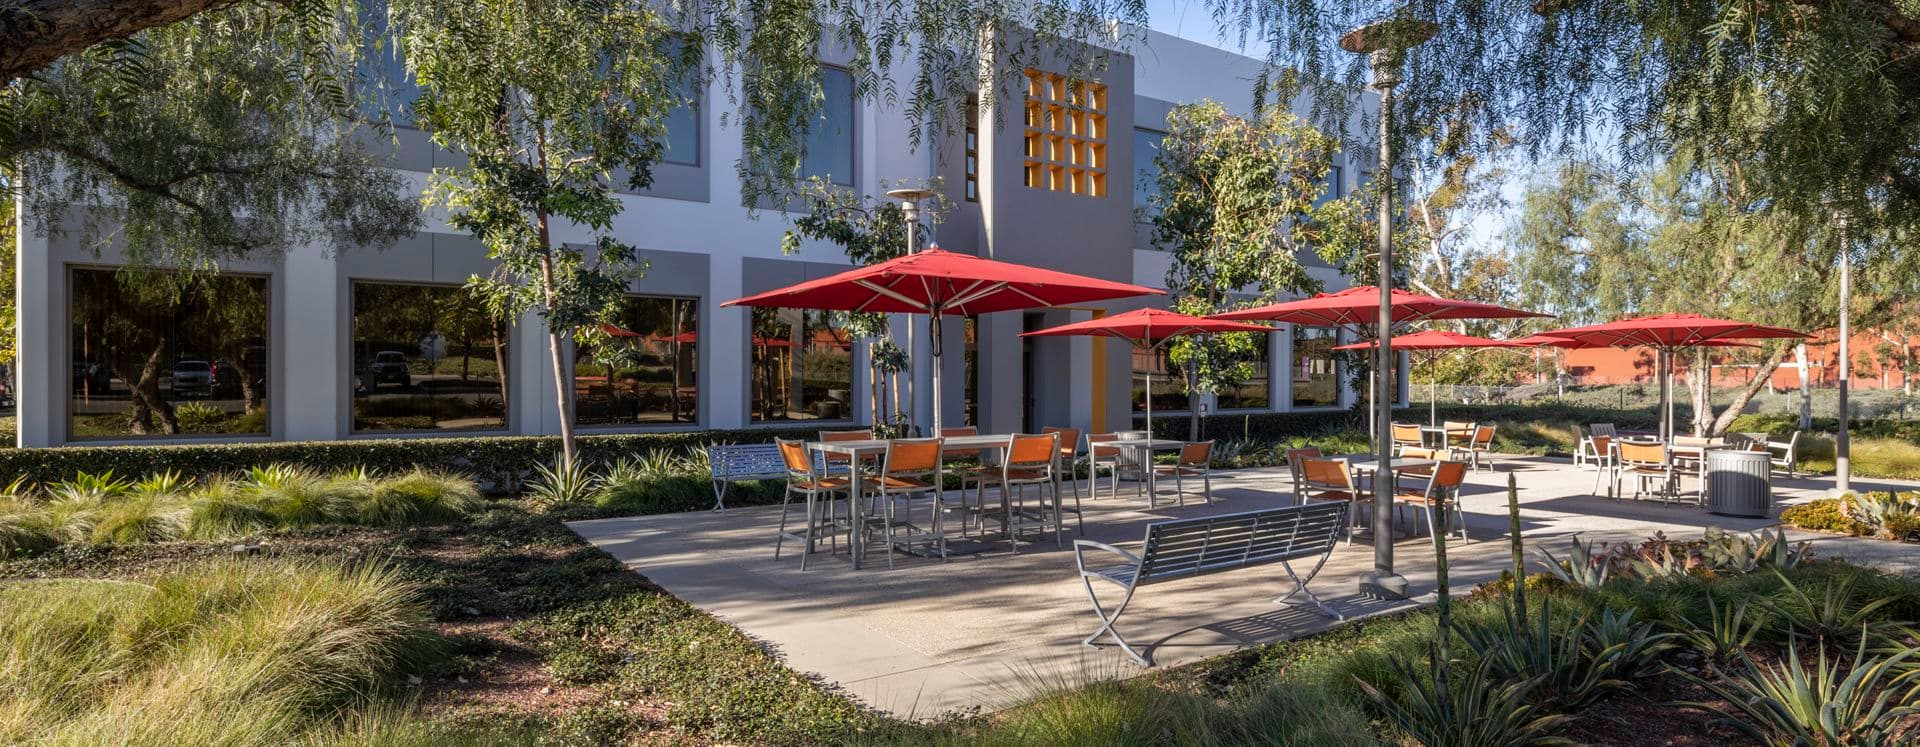 Exterior view of 3200 El Camino Real at Market Place Center in Irvine, CA.